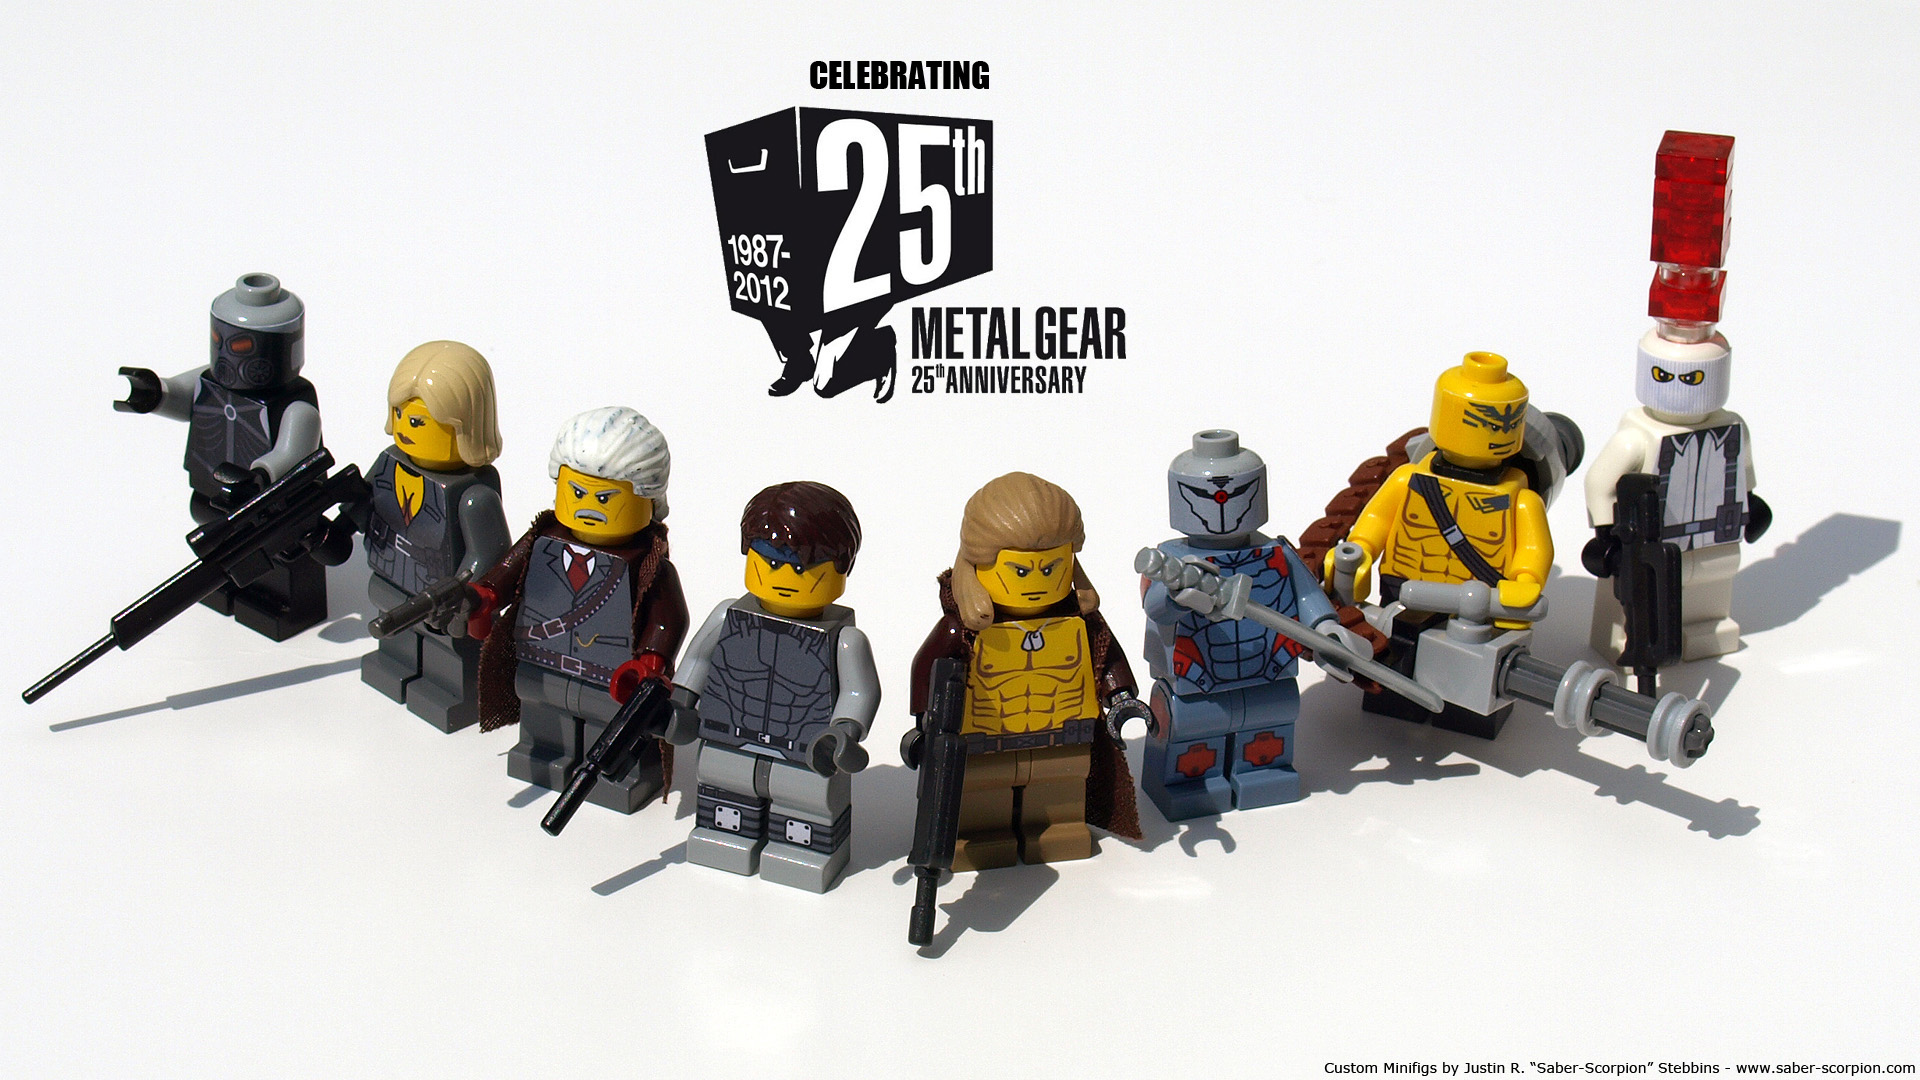 Metal Gear Solid LEGO Minifigs by Saber-Scorpion